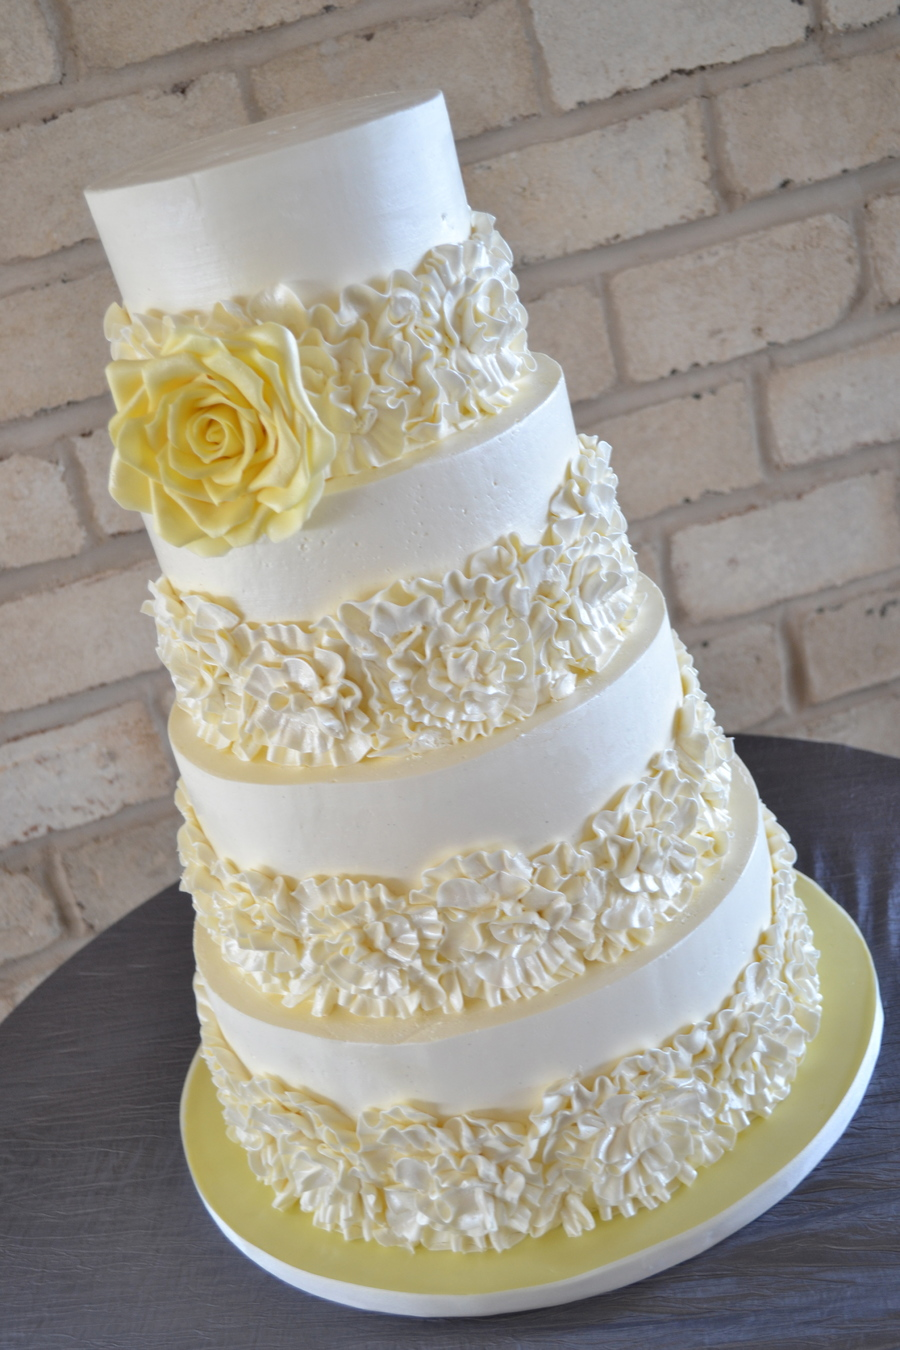 Top 25 Cakes with Buttercream Ruffles - Page 10 of 27